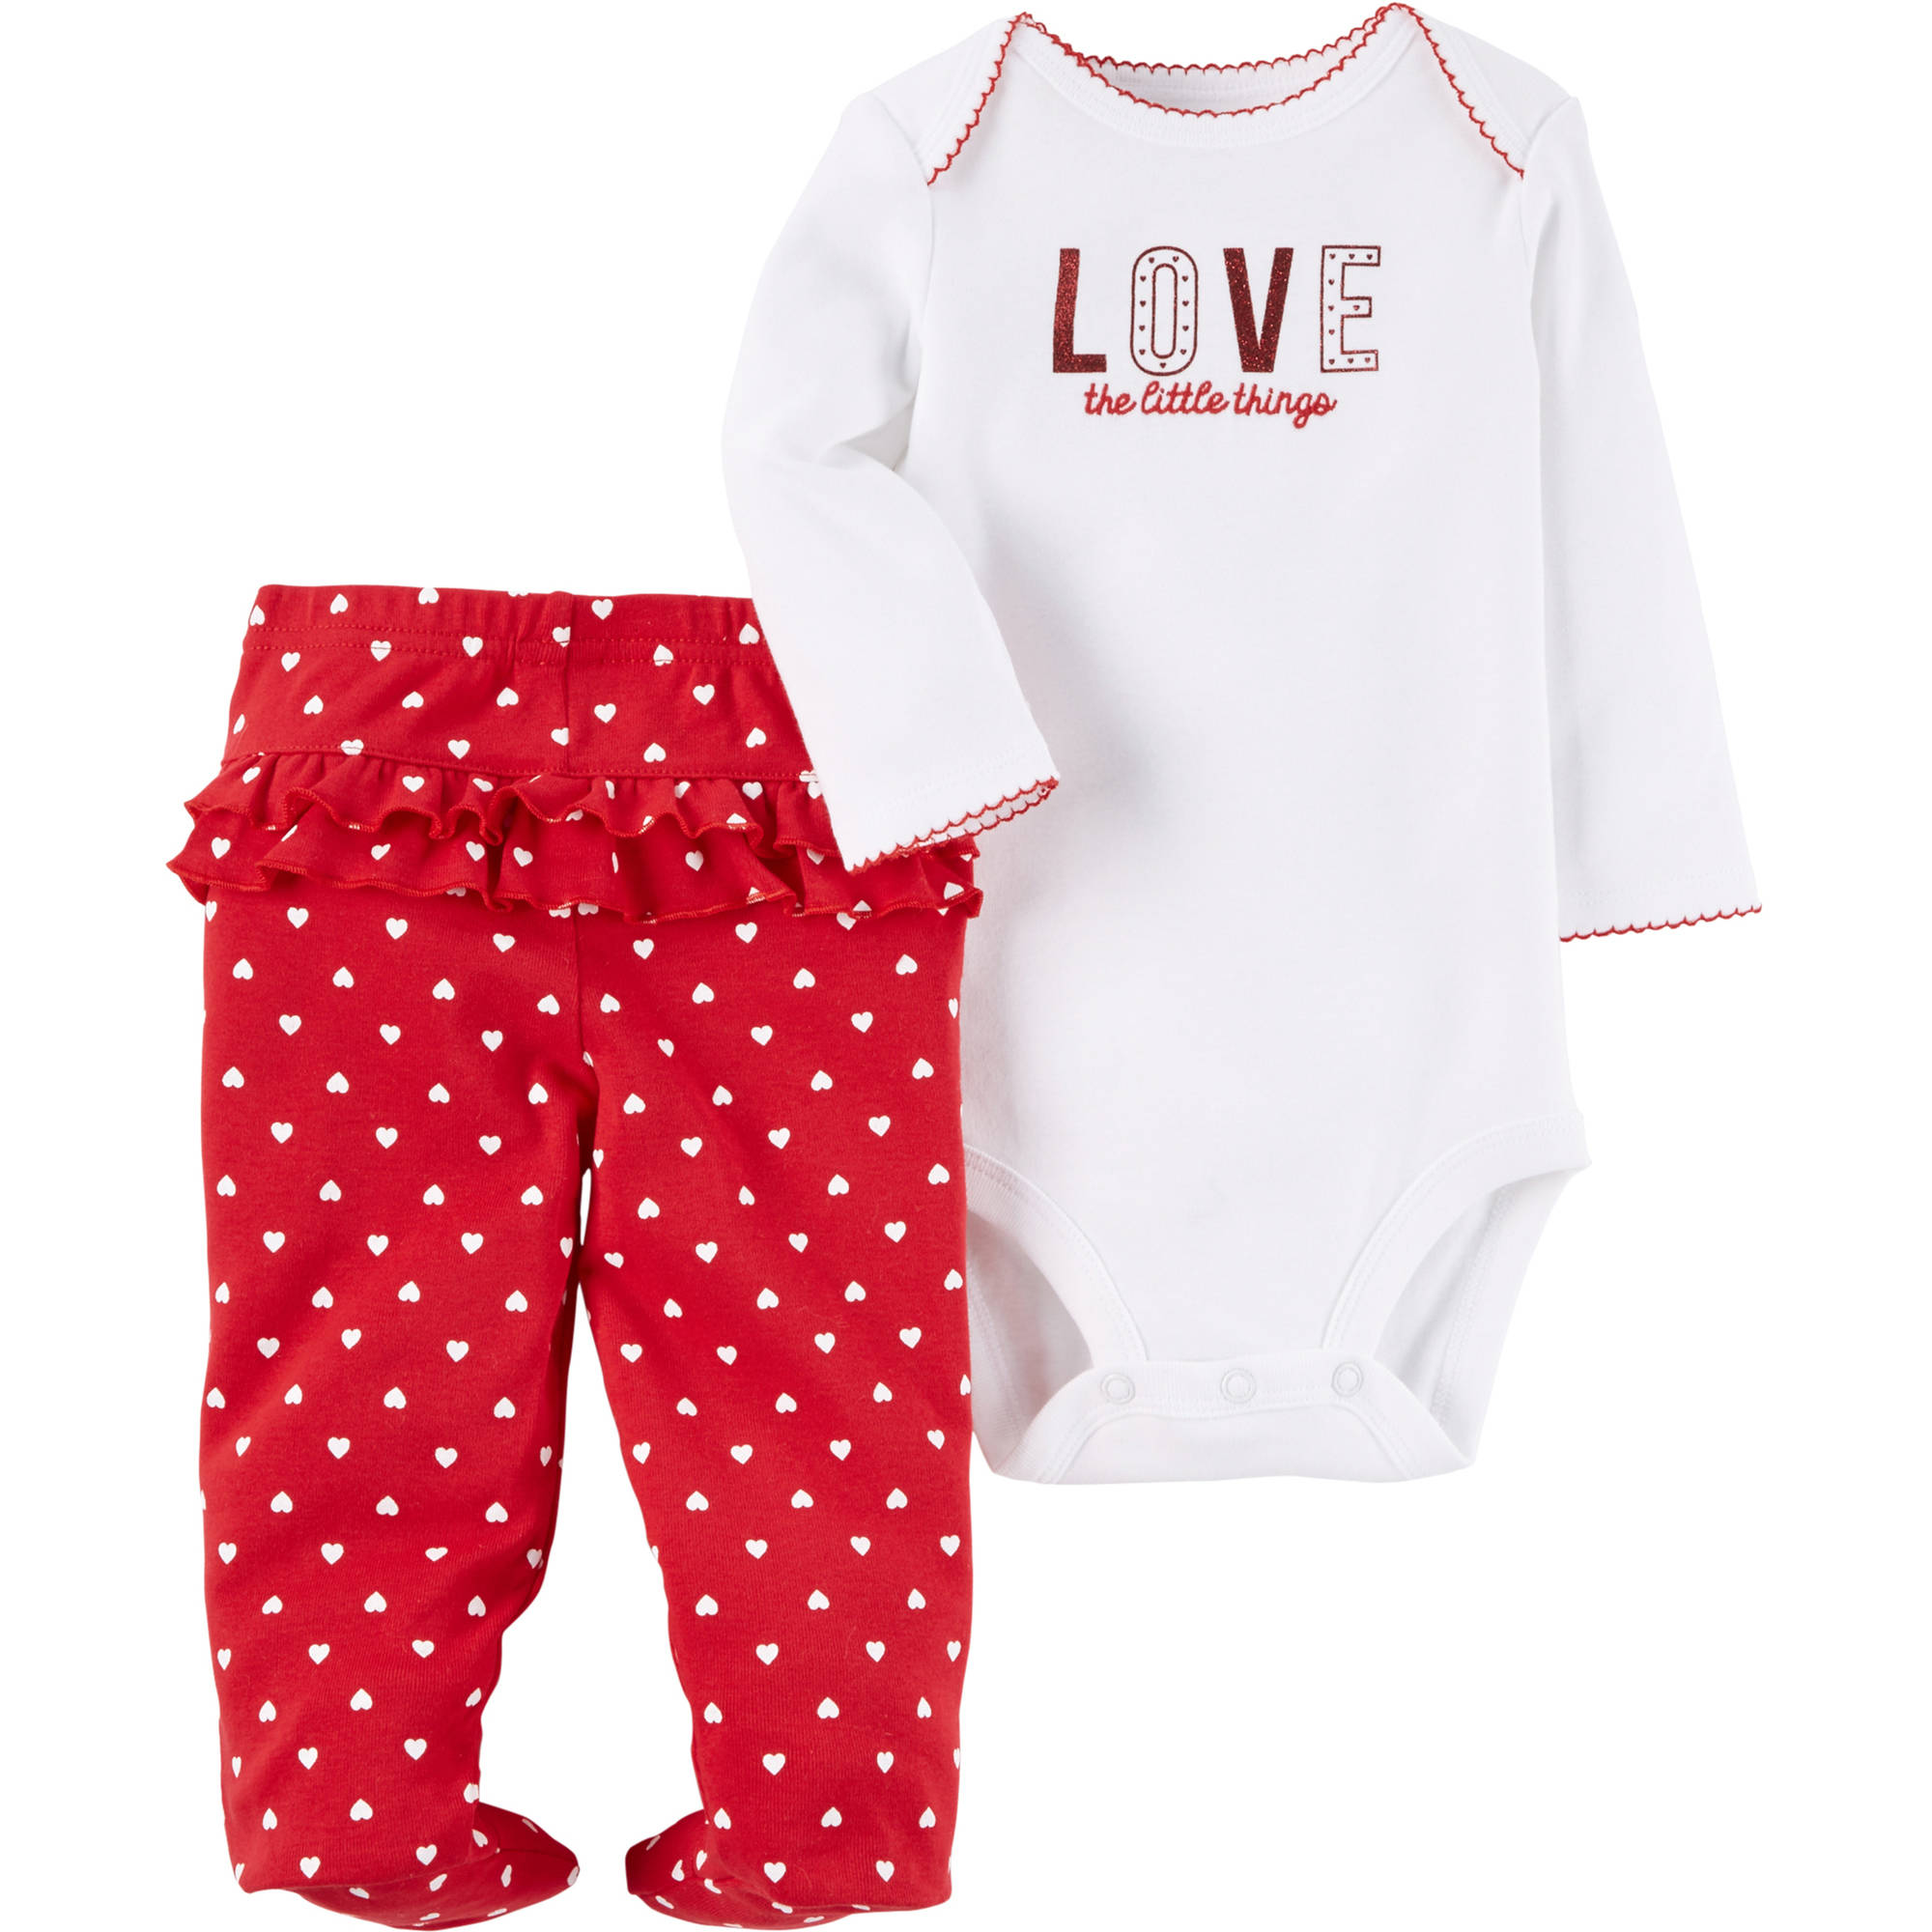 62ce3c570 Child of Mine by Carter s - Com Valentines Bodysuit Set Girl ...